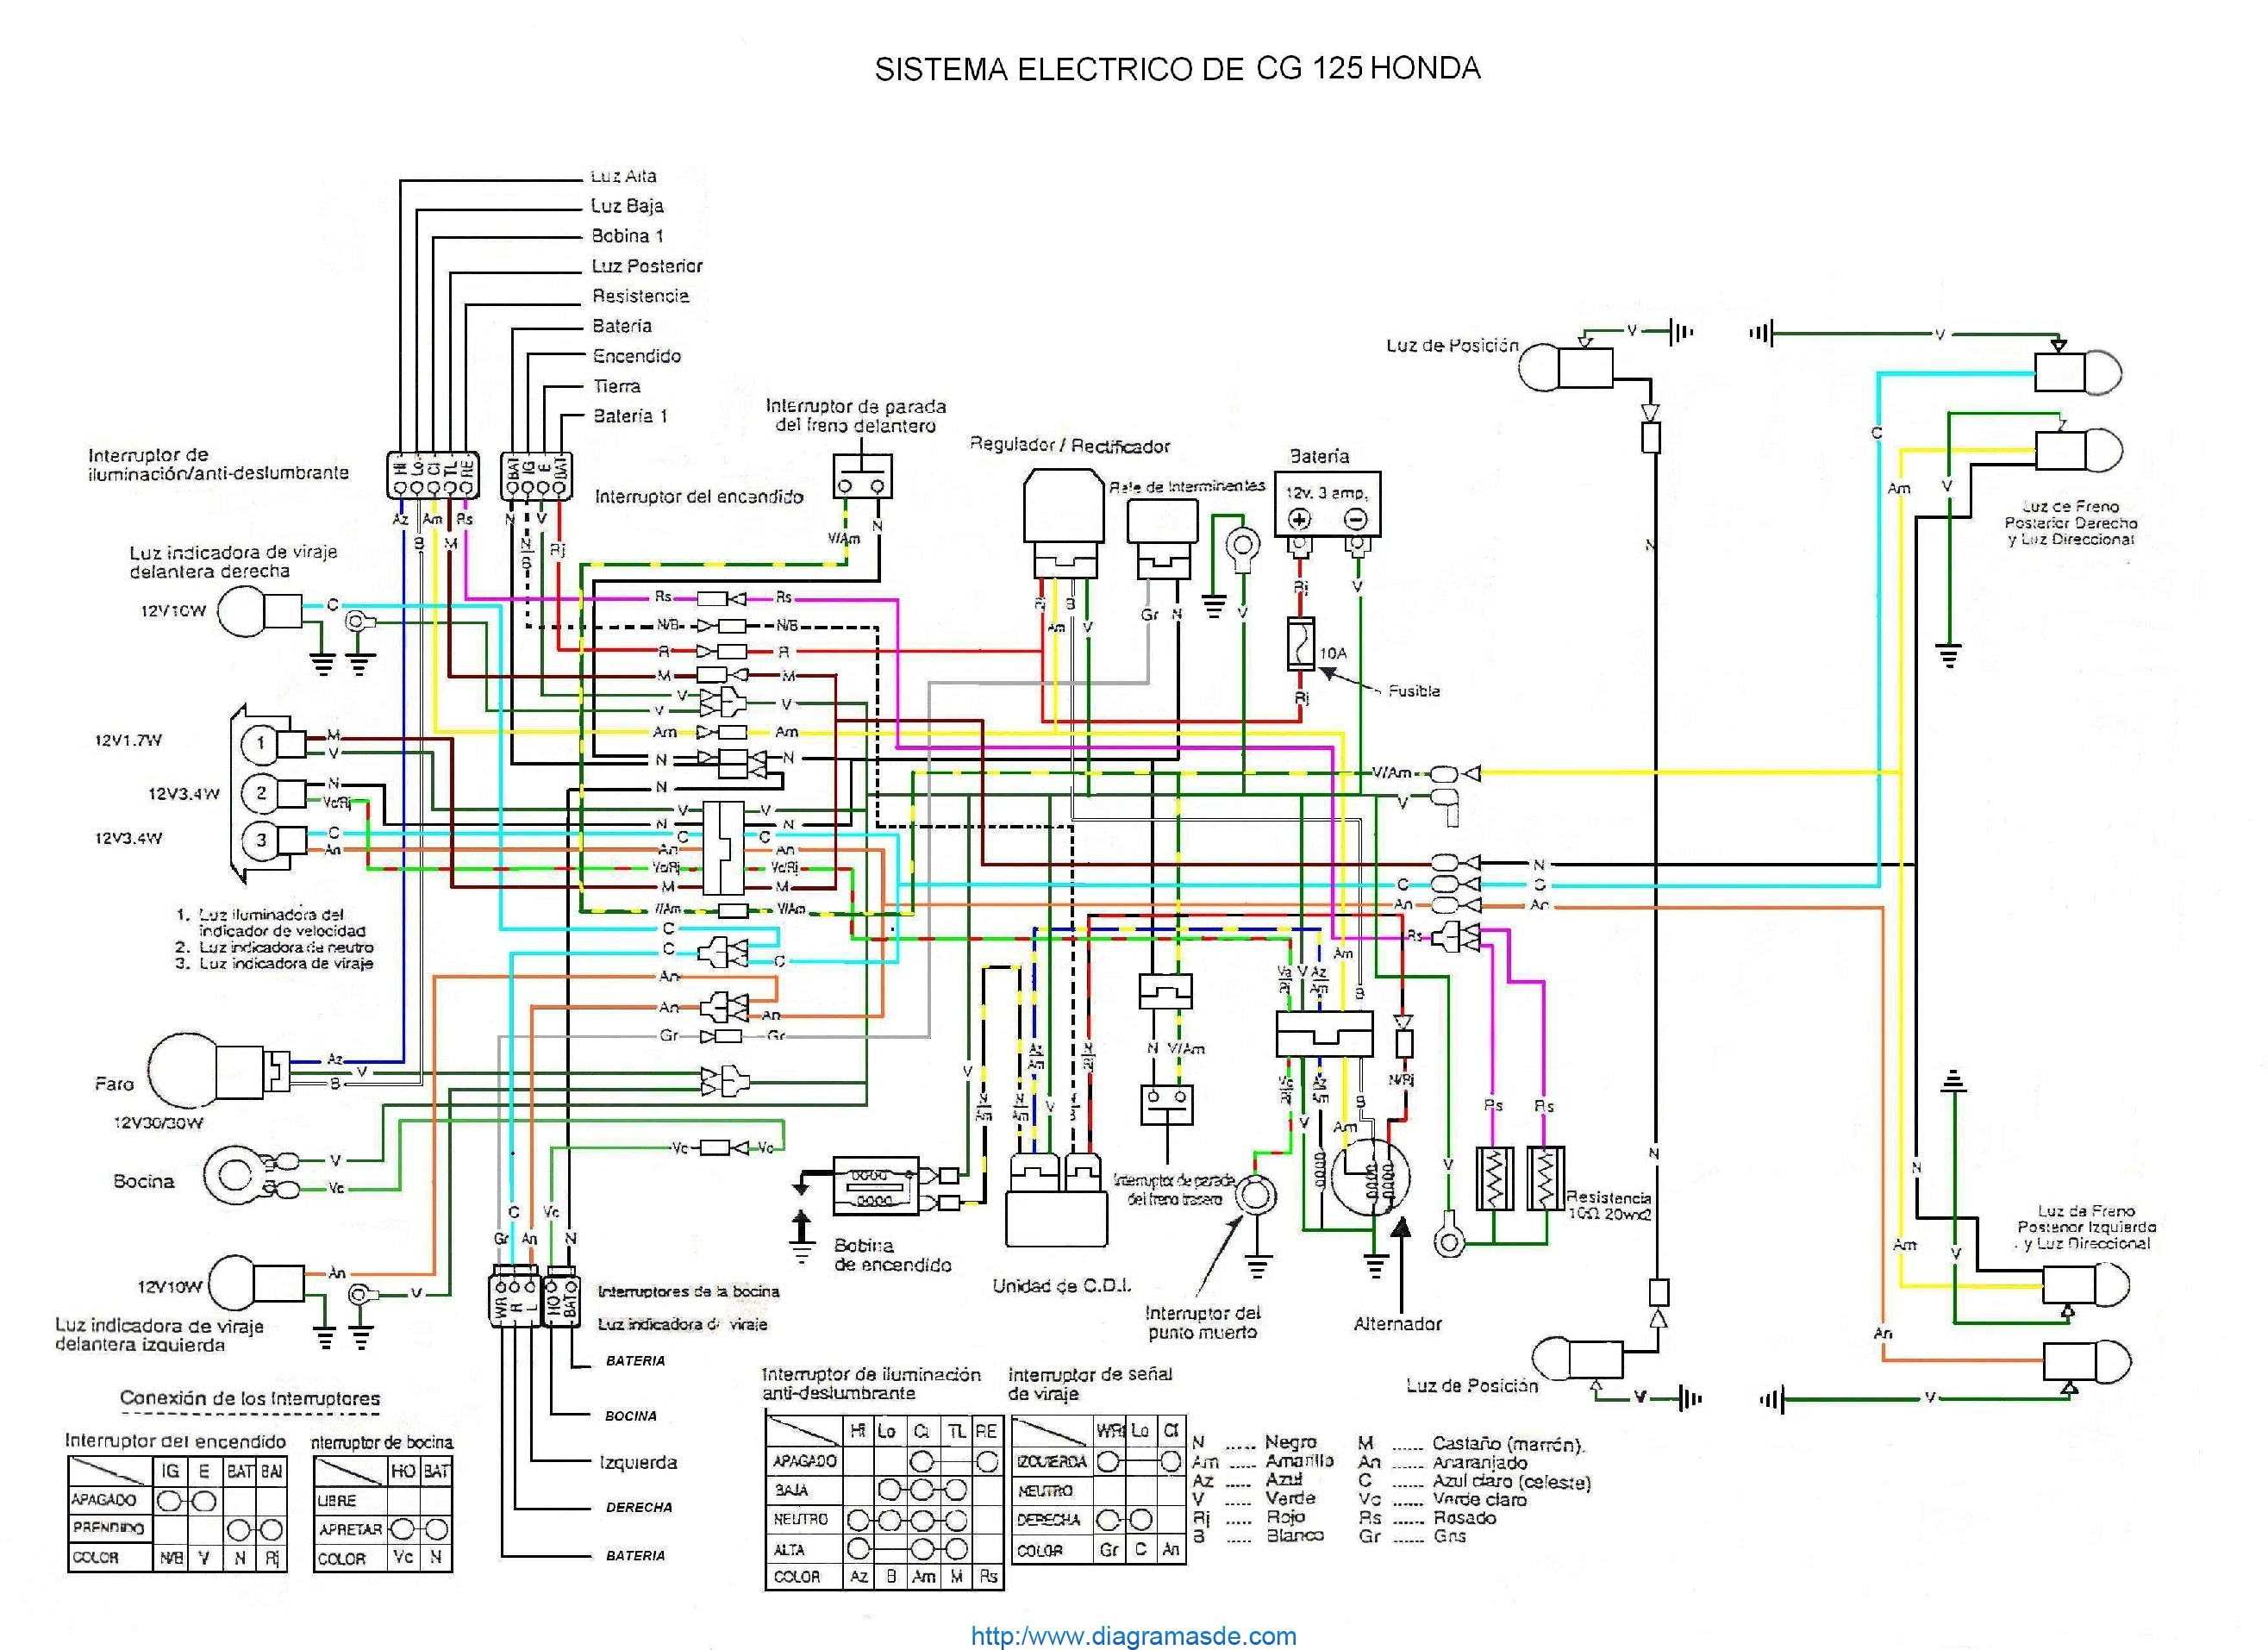 2003 Hyundai Santa Fe Ignition Wiring Diagram 2003 Hyundai Santa Fe